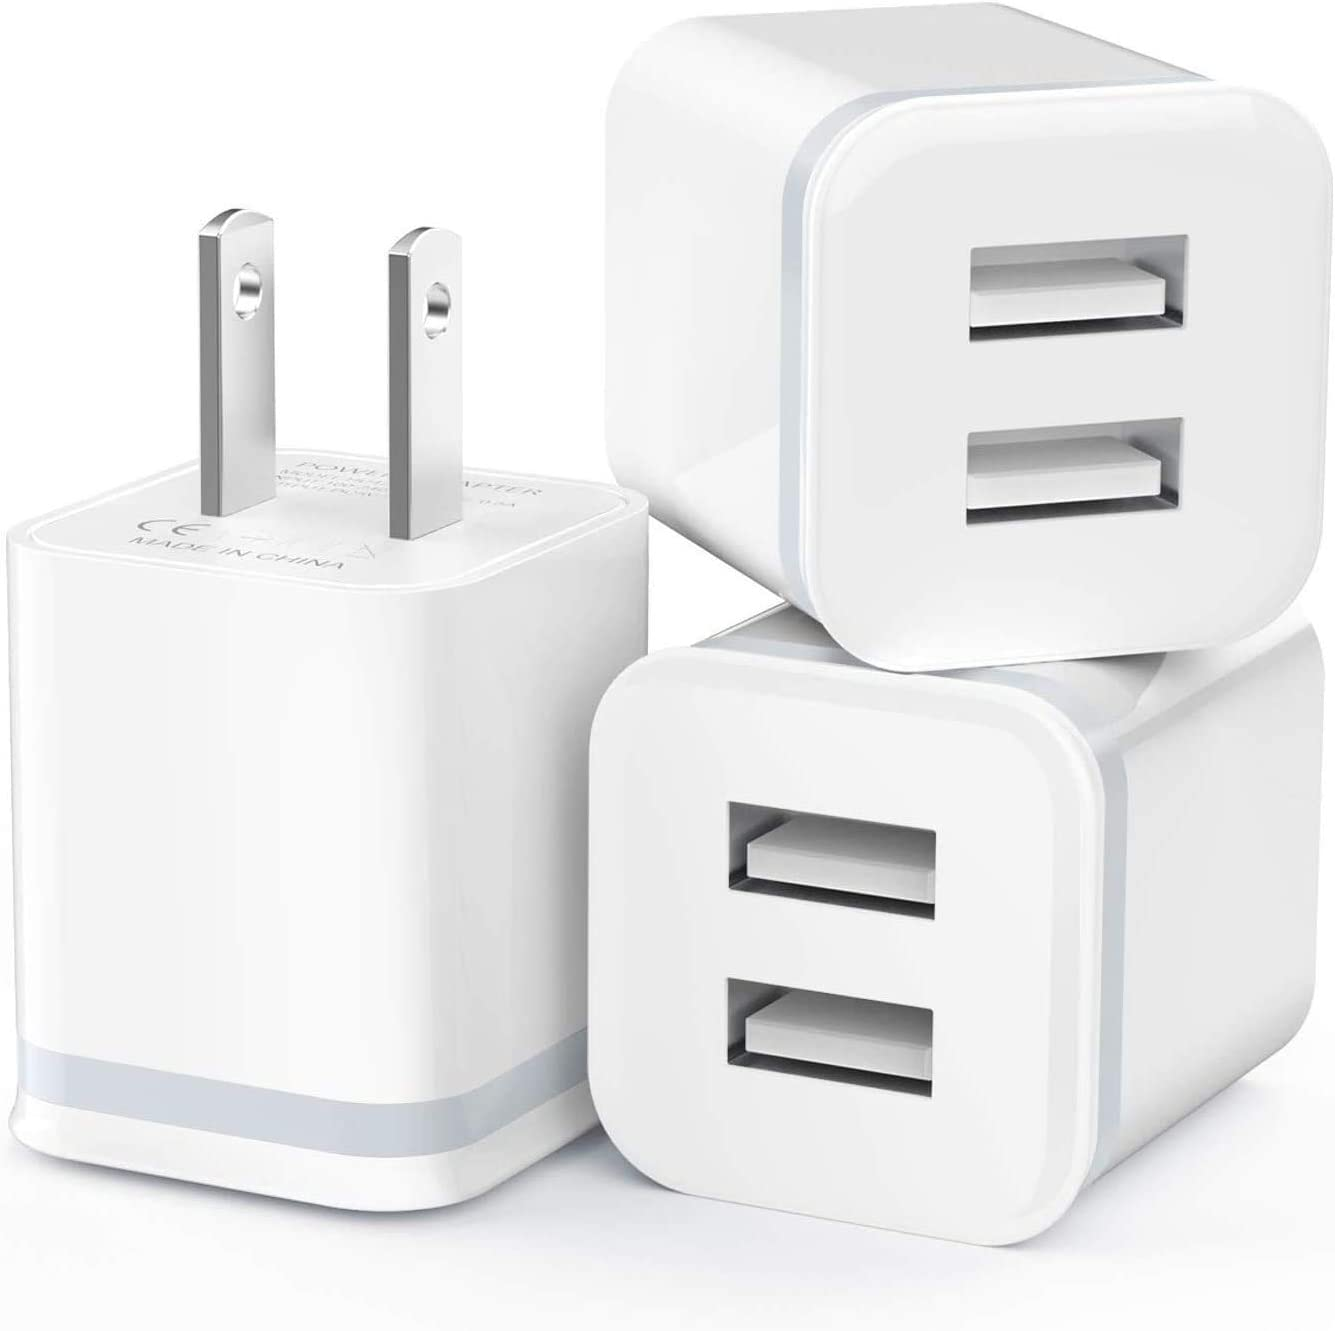 USB Wall Charger, LUOATIP 3-Pack 2.1A/5V Dual Port USB Cube Power Adapter Charger Plug Charging Block Replacement for iPhone Xs/XR/X, 8/7/6 Plus, Samsung, LG, HTC, Moto, Android Phones